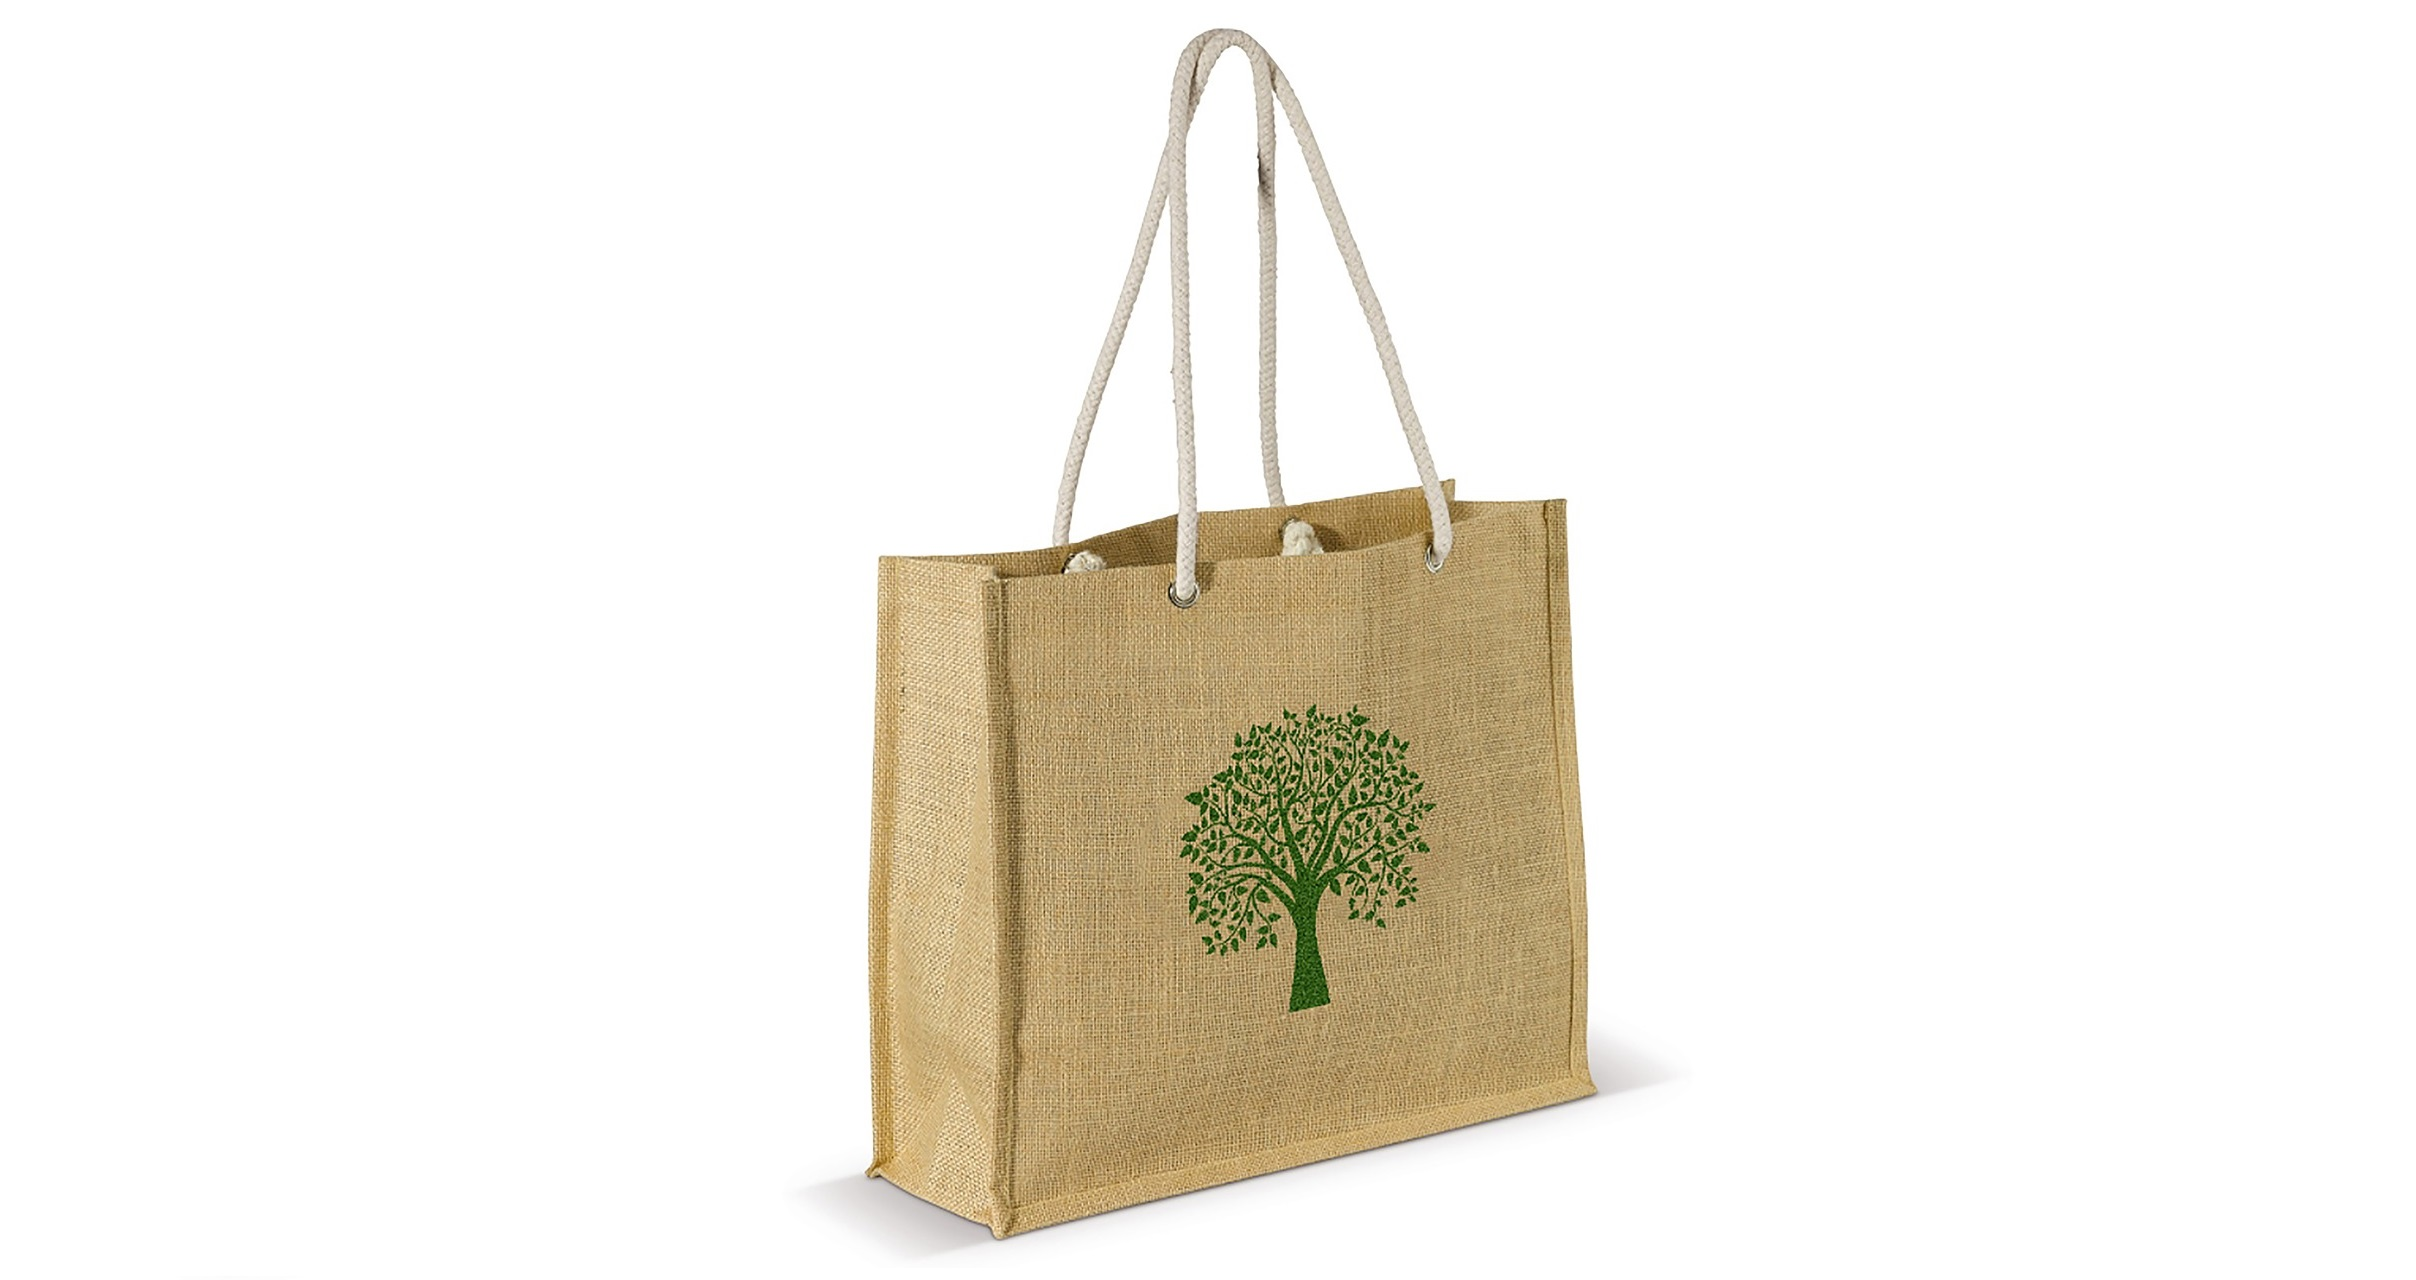 Wherever you go, take a reusable shopping bag with you